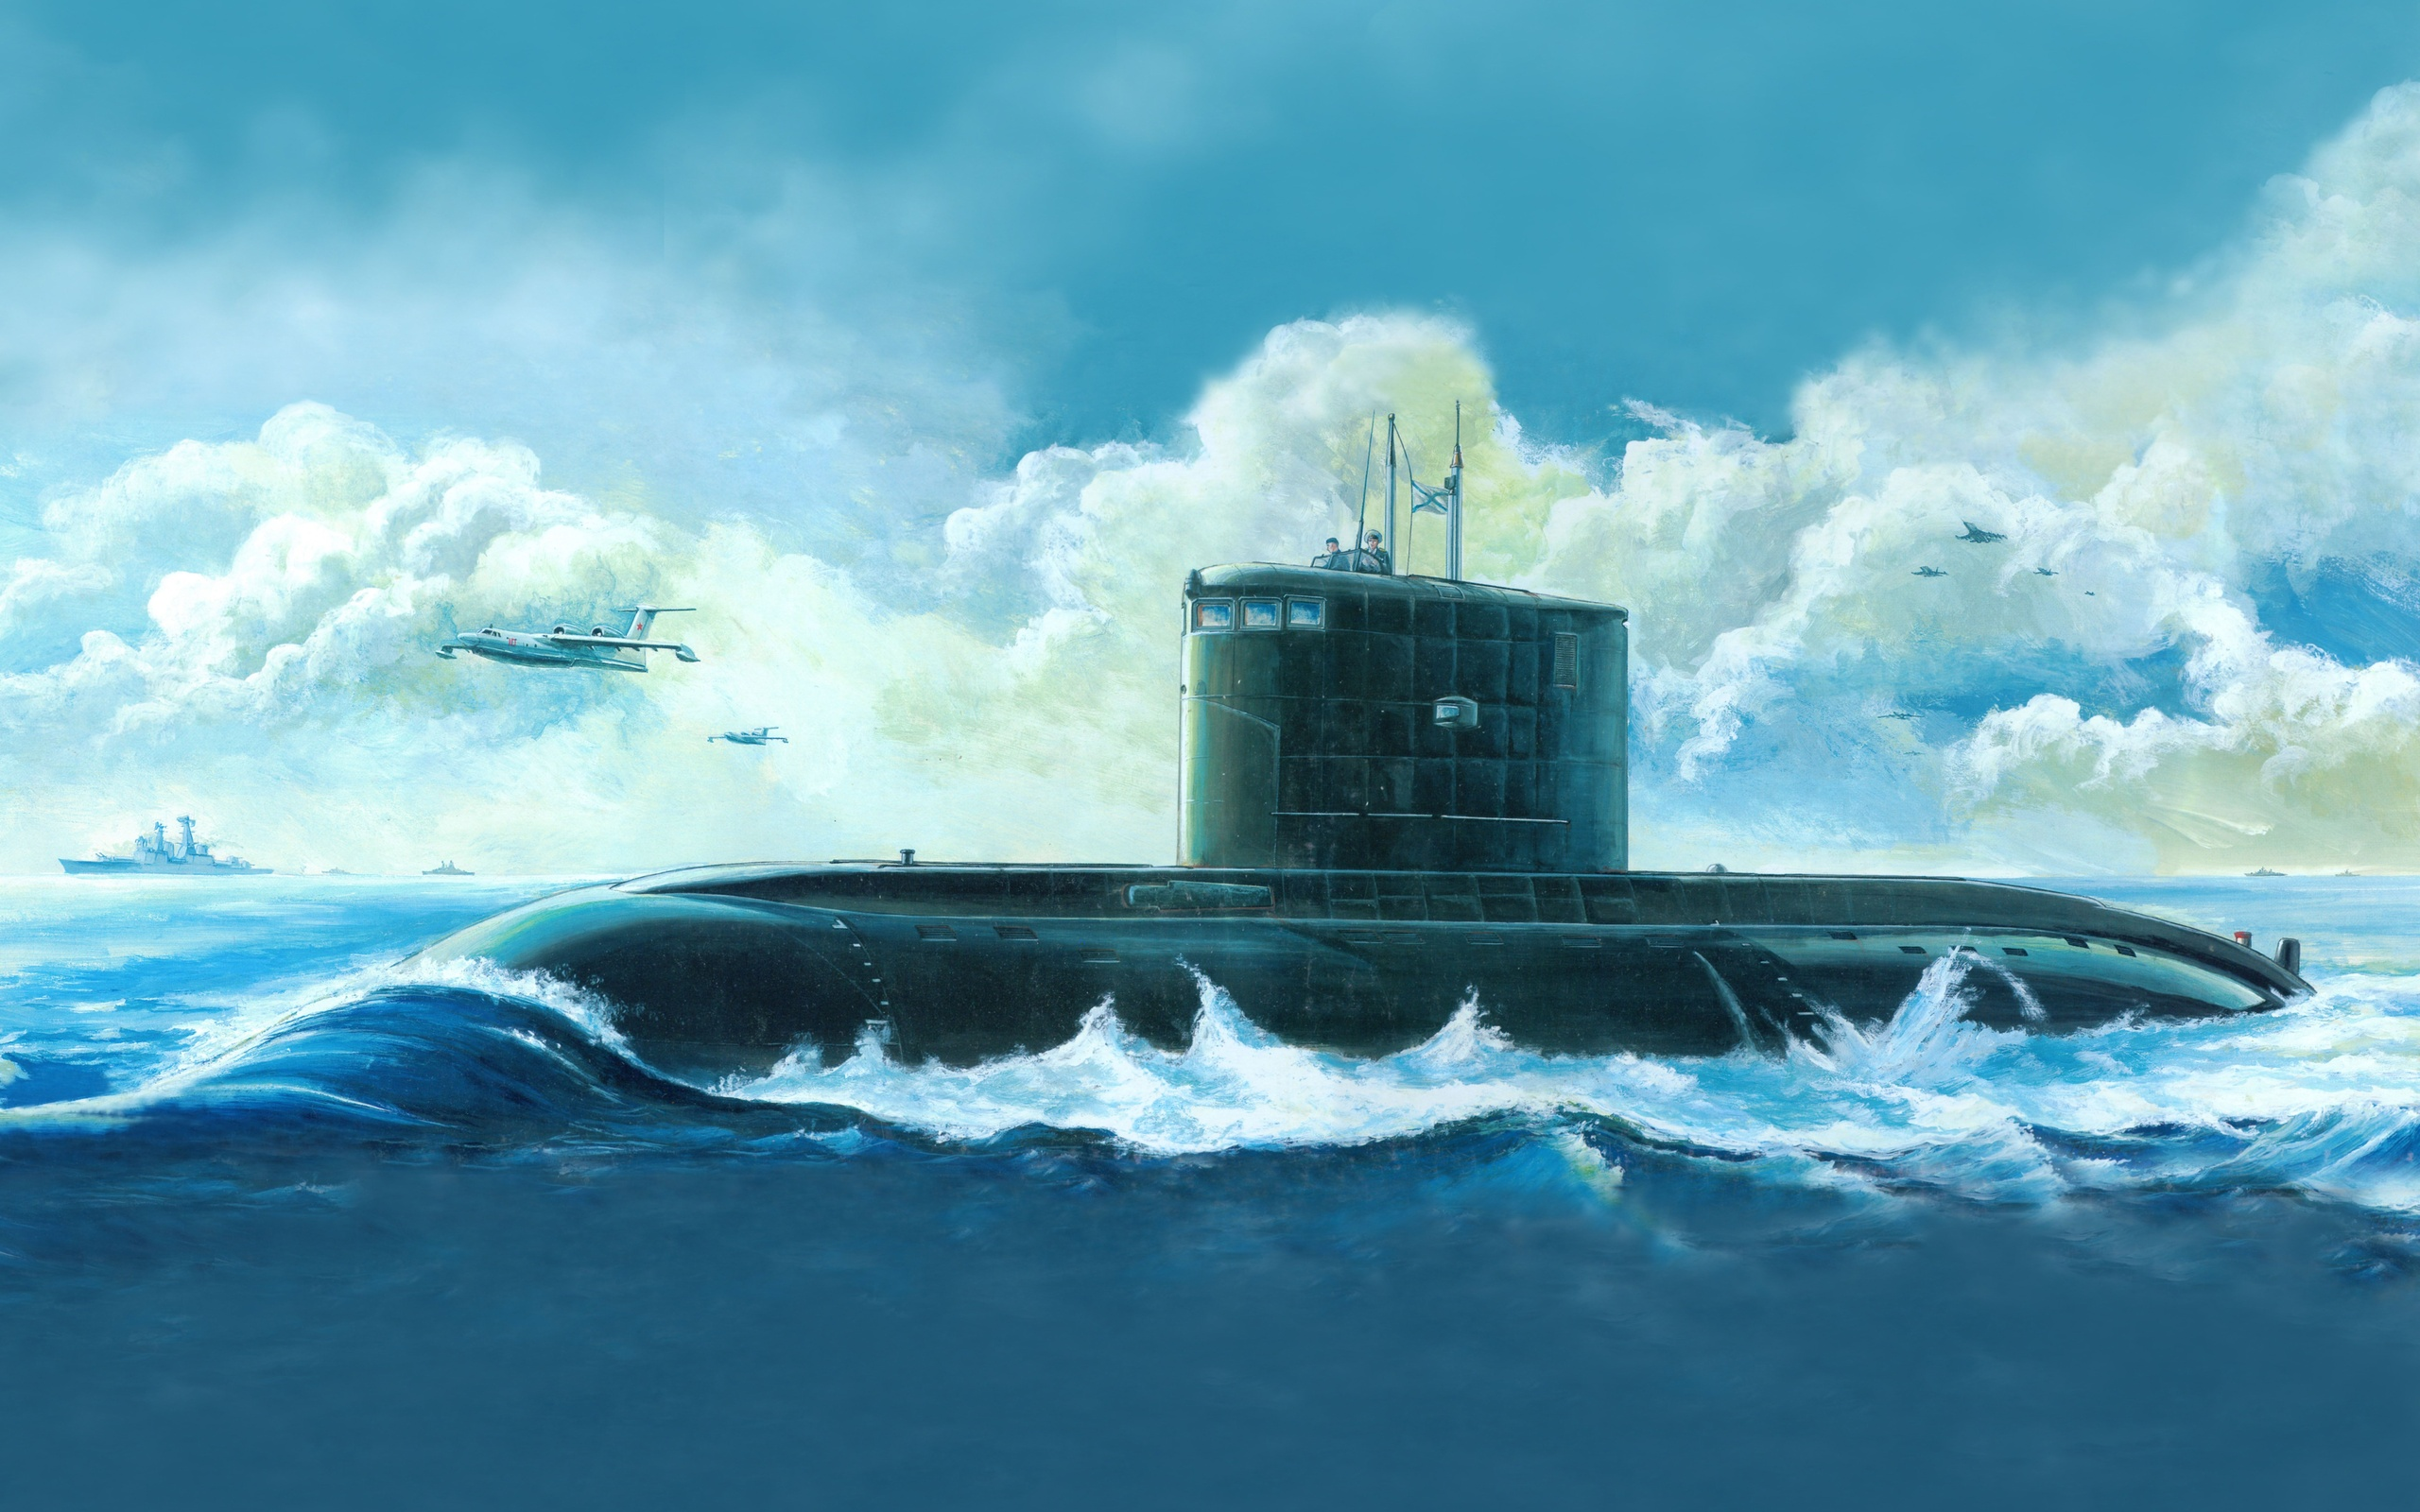 Submarine Wallpapers  Full HD wallpaper search